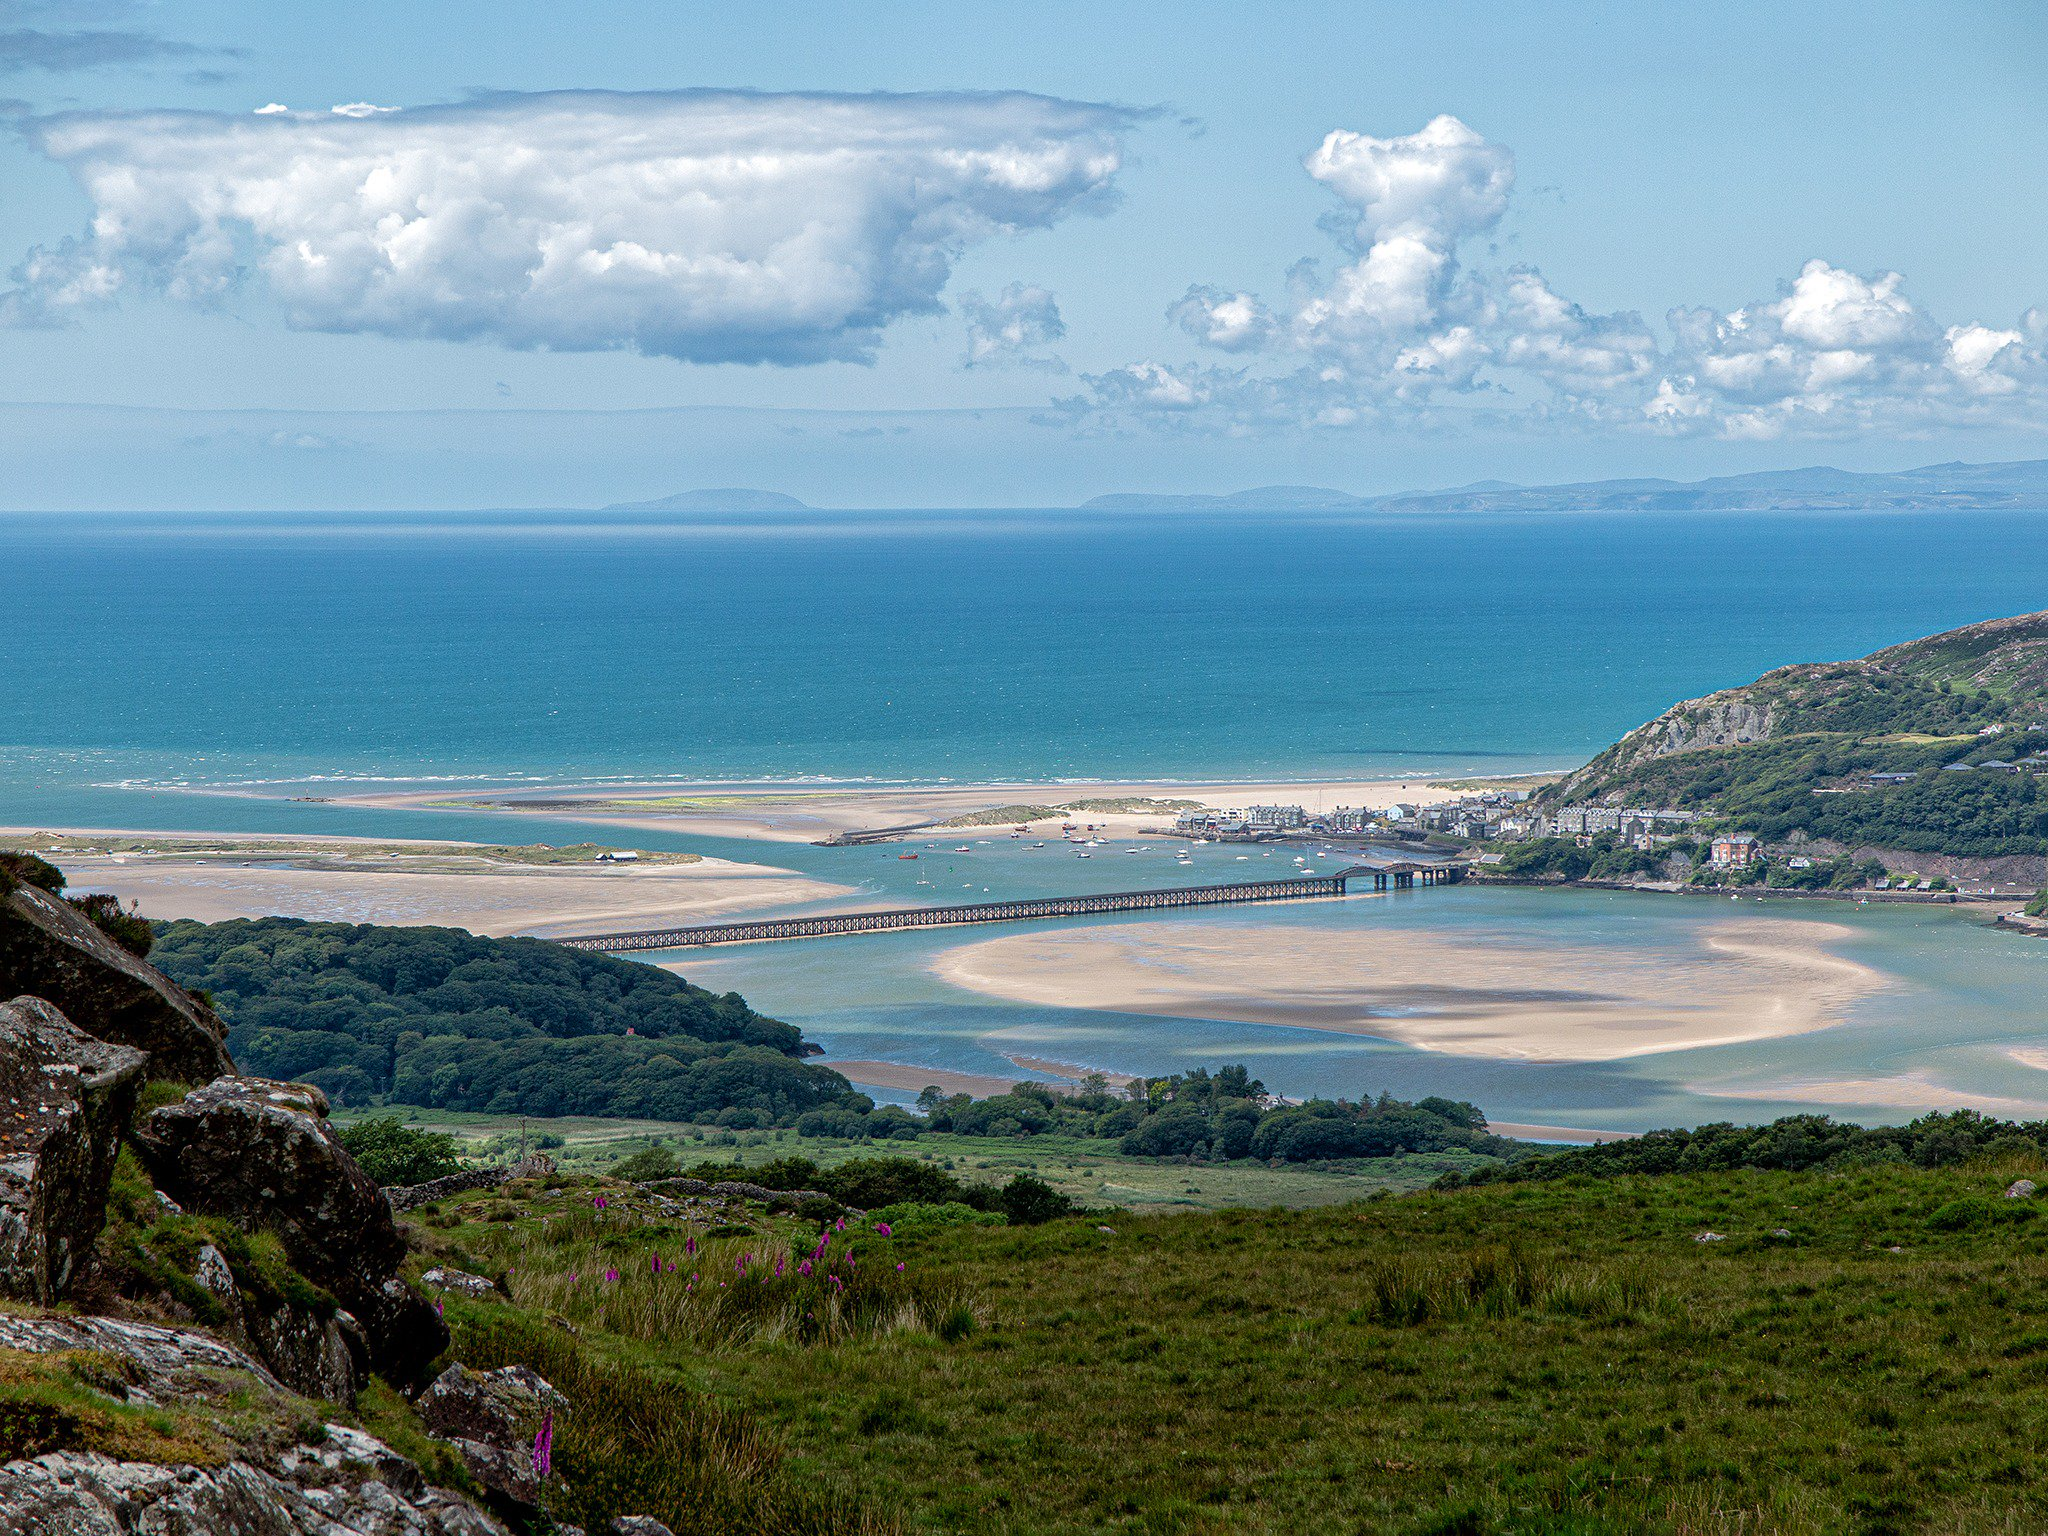 Barmouth and Beyond From a 10 mile circular walk taking in woods, waterfalls, lakes, moorland, rivers and the Mawddach estuary.  #wales #barmouth @visitwales #mawddach #photographer #walk https://t.co/j8E8Vt5nuY